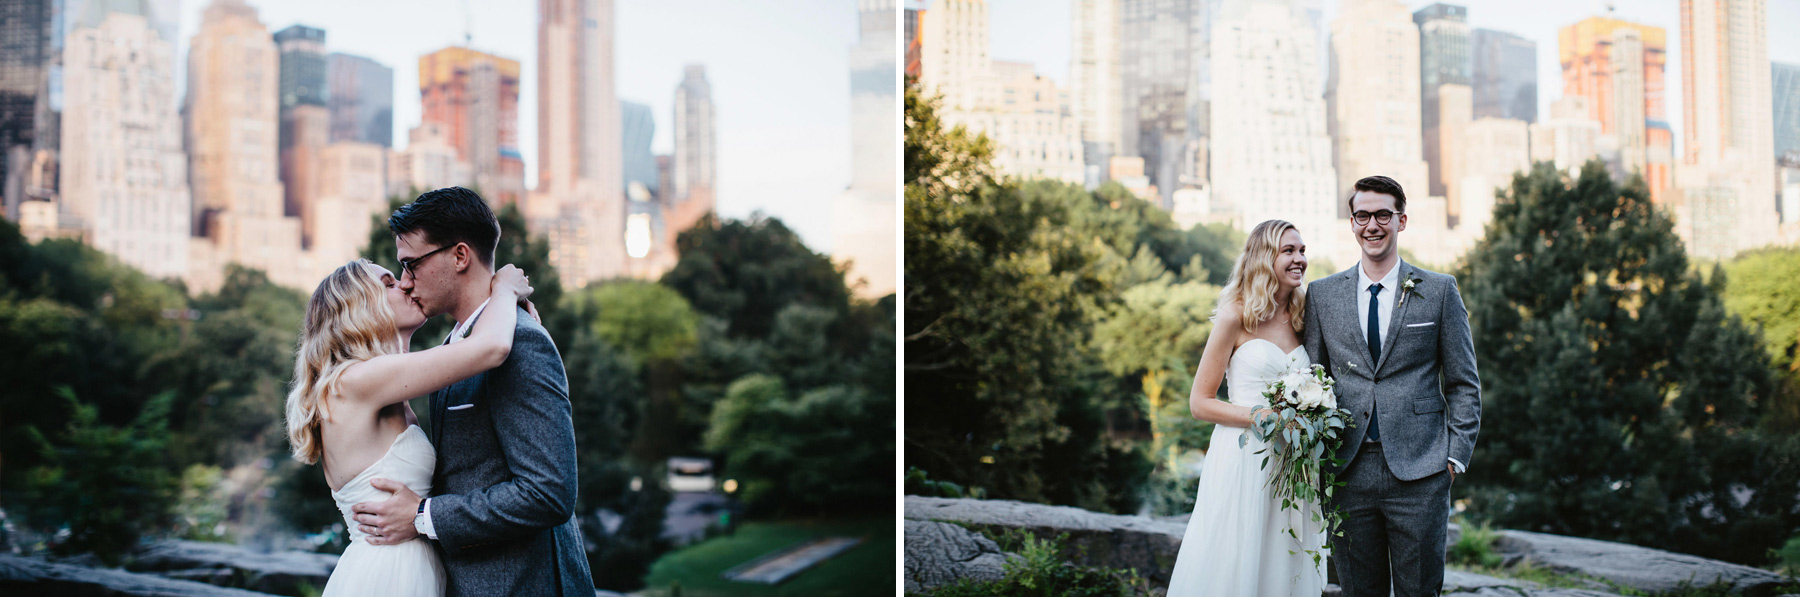 55_Central Park New York City Elopement_Kindling Wedding Photography.JPG